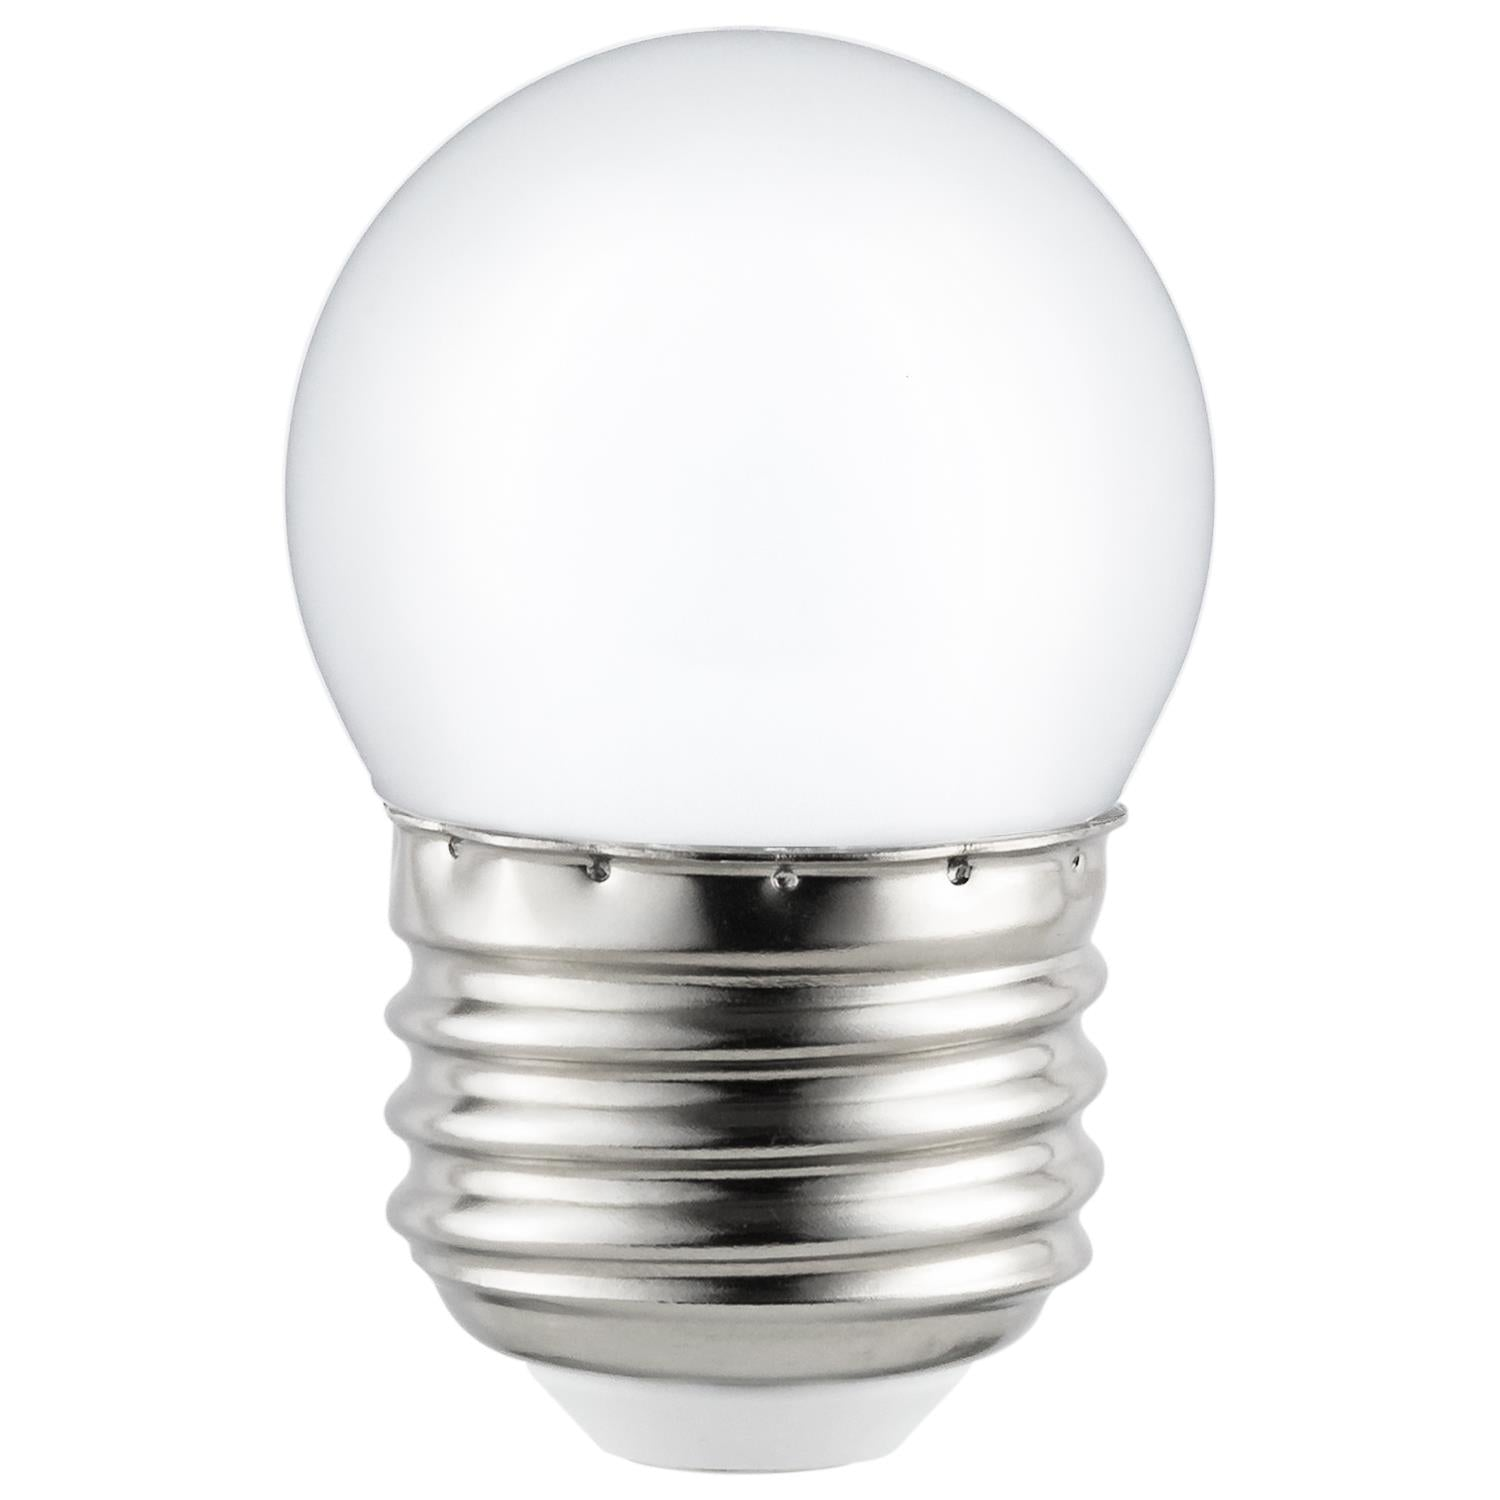 SUNLITE 81068-SU 1 Watt S11 Lamp Medium (E26) Base Warm White 2700K